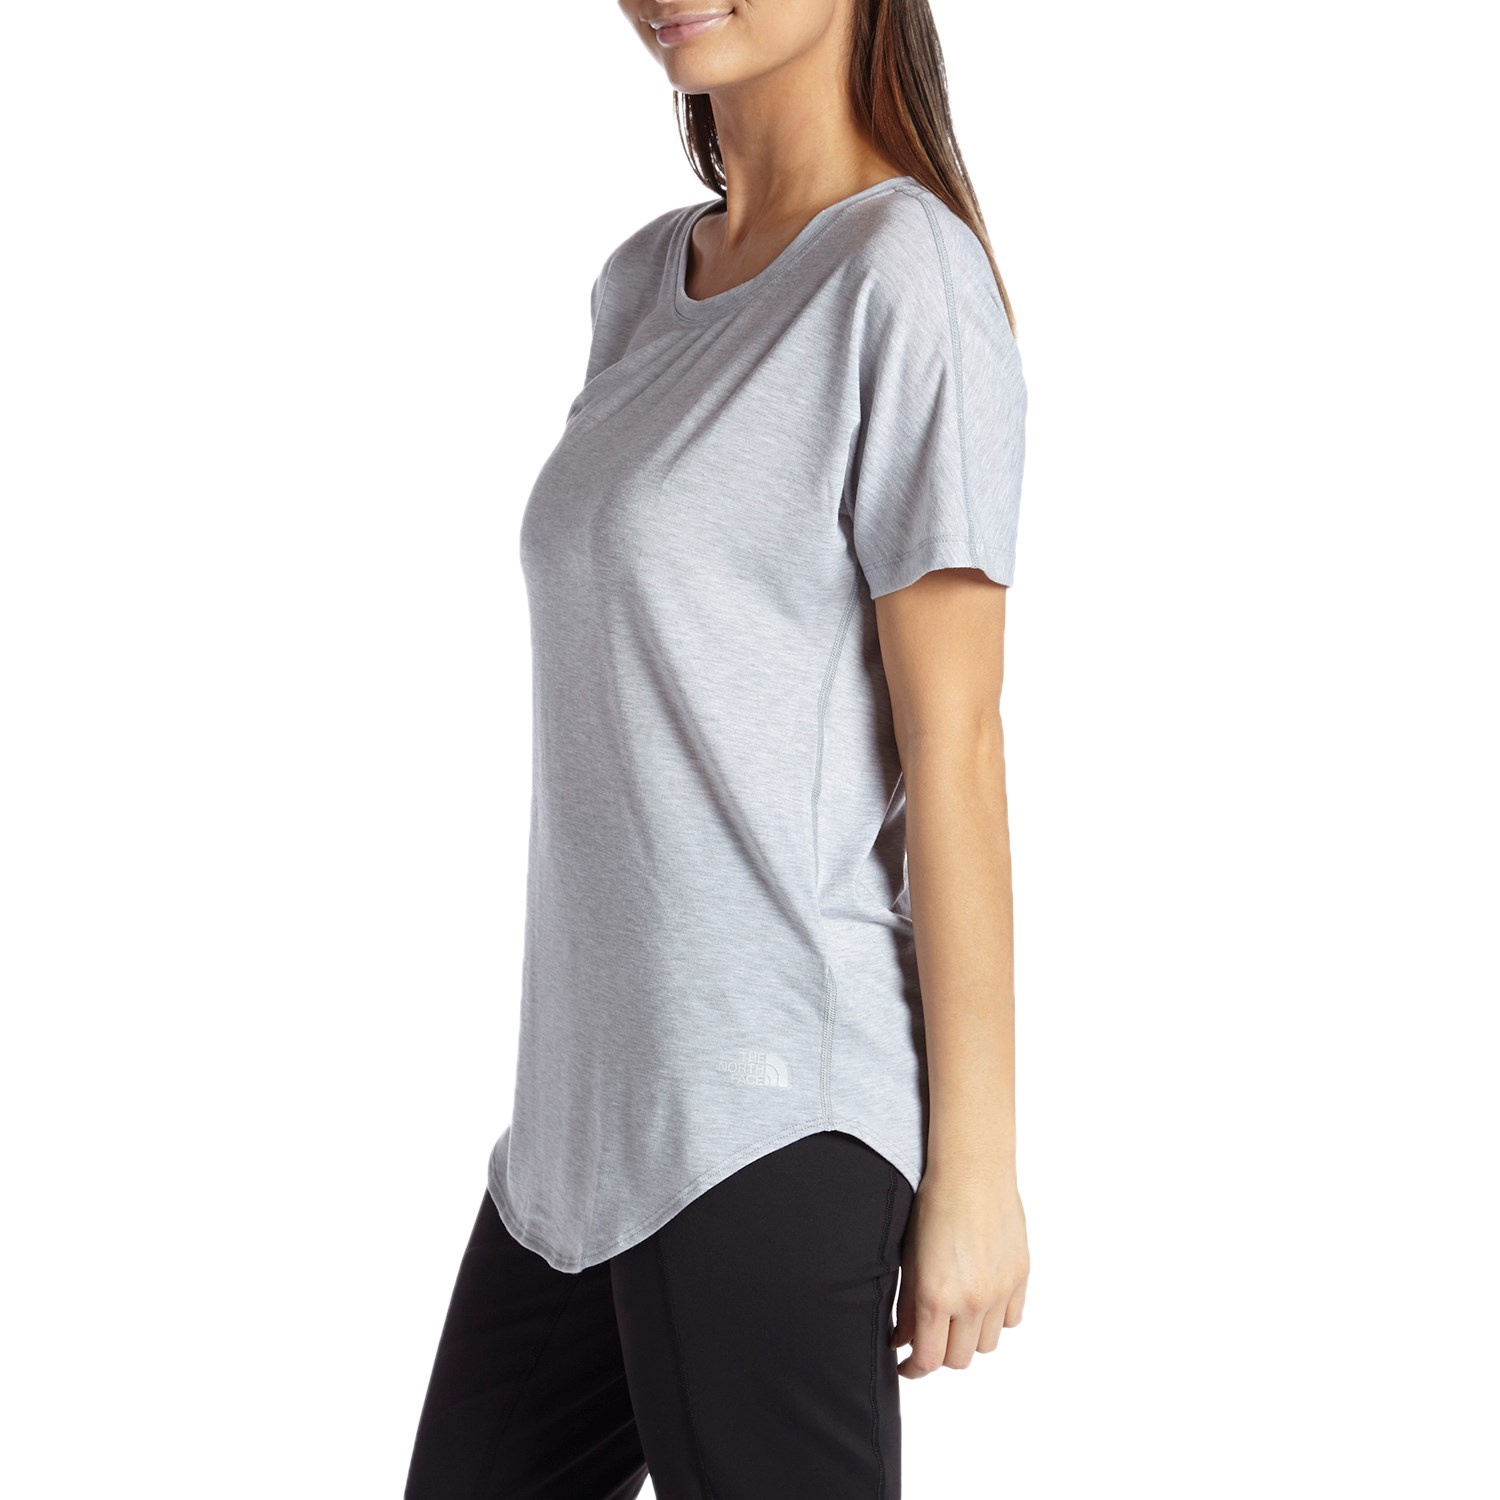 d69213356 The North Face Workout Short-Sleeve T-Shirt - Women's